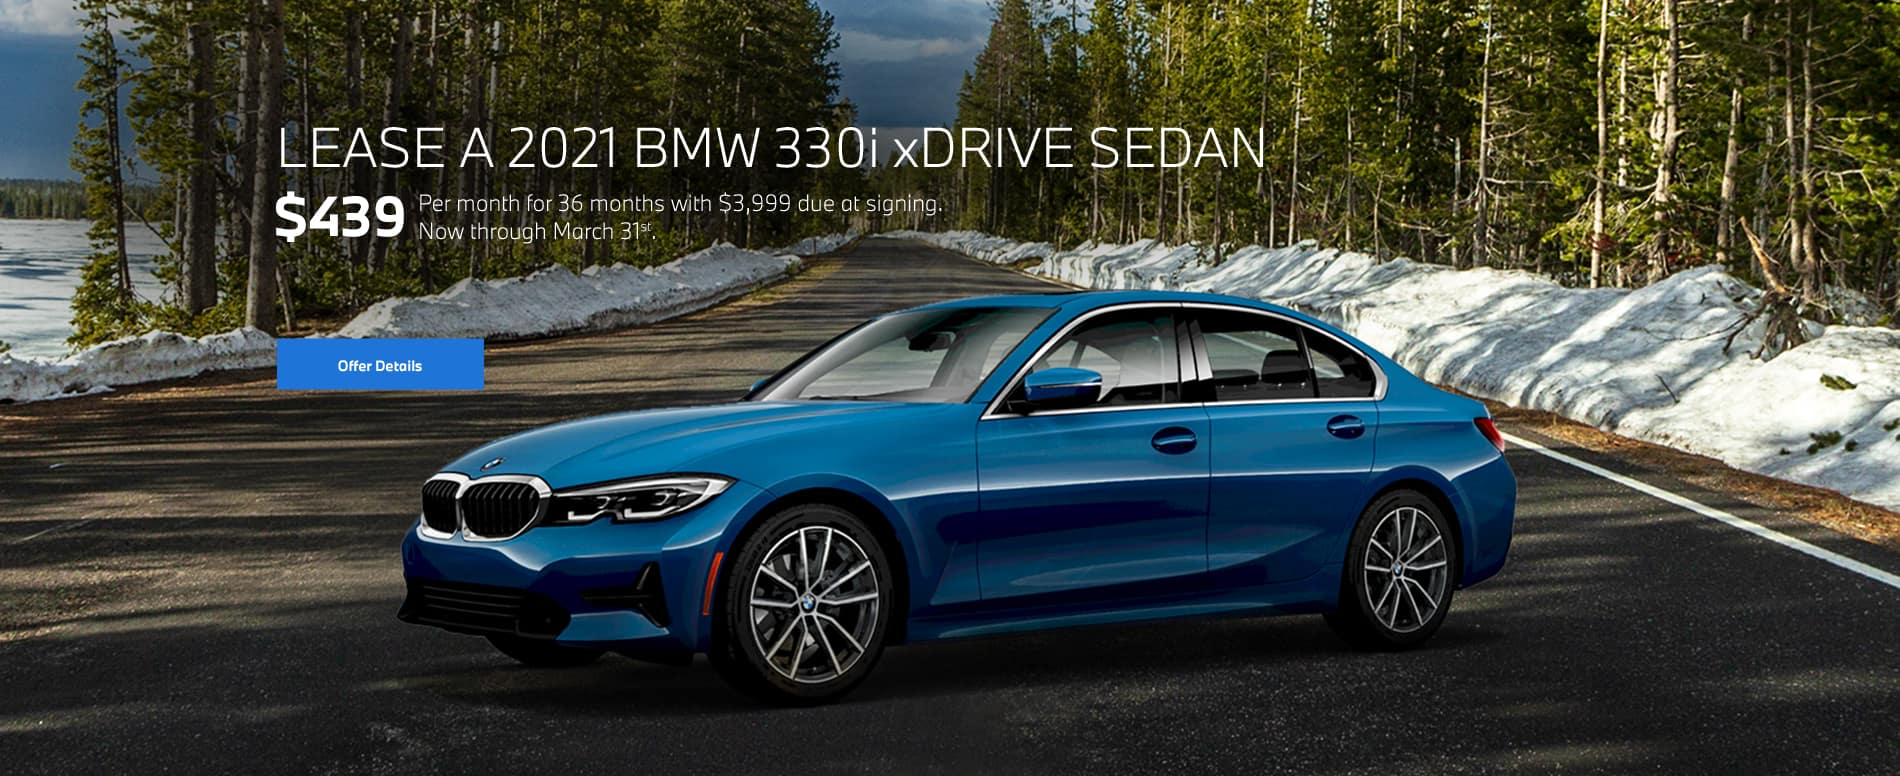 Blue 3 Series on open road